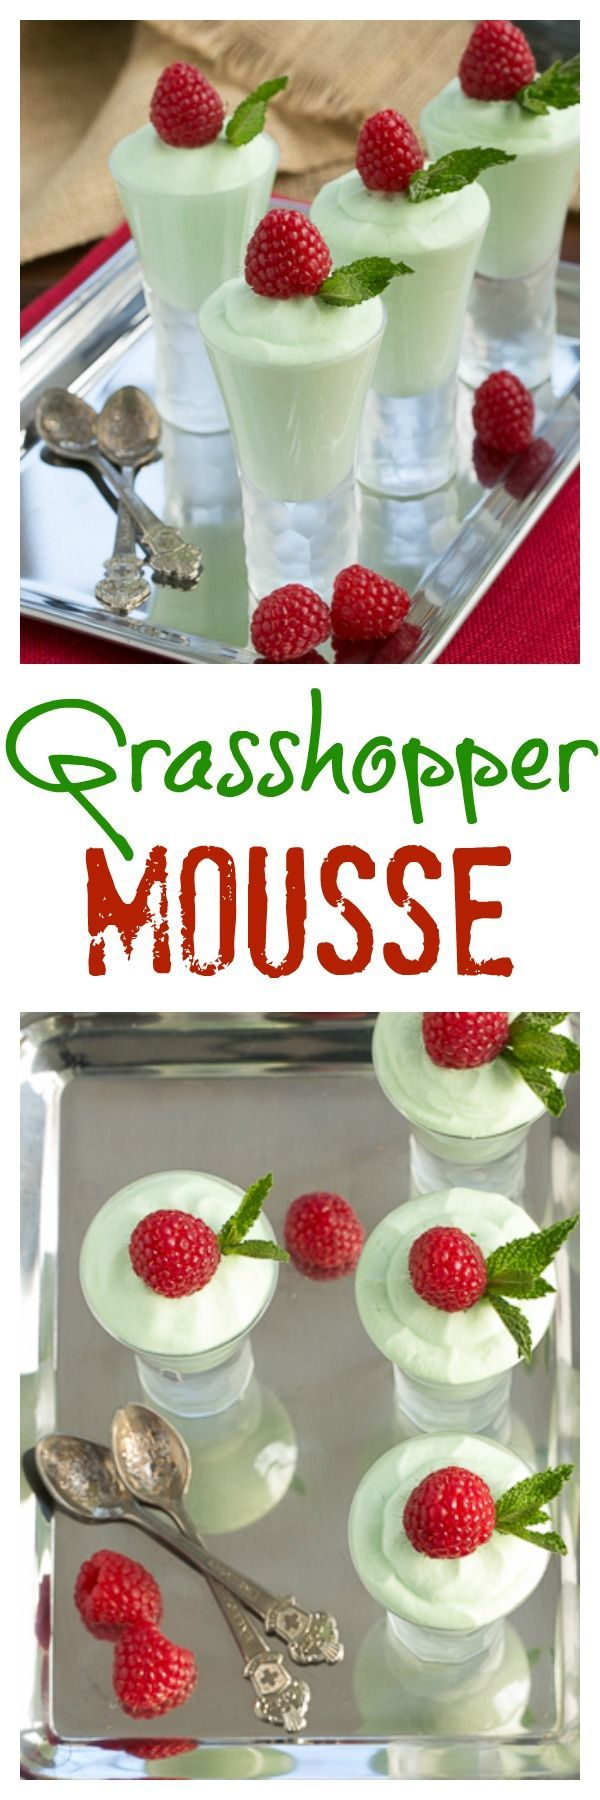 Grasshopper Mousse | Dreamy mint mousse that's perfect for St. Patrick's Day or ANY day! @lizzydo